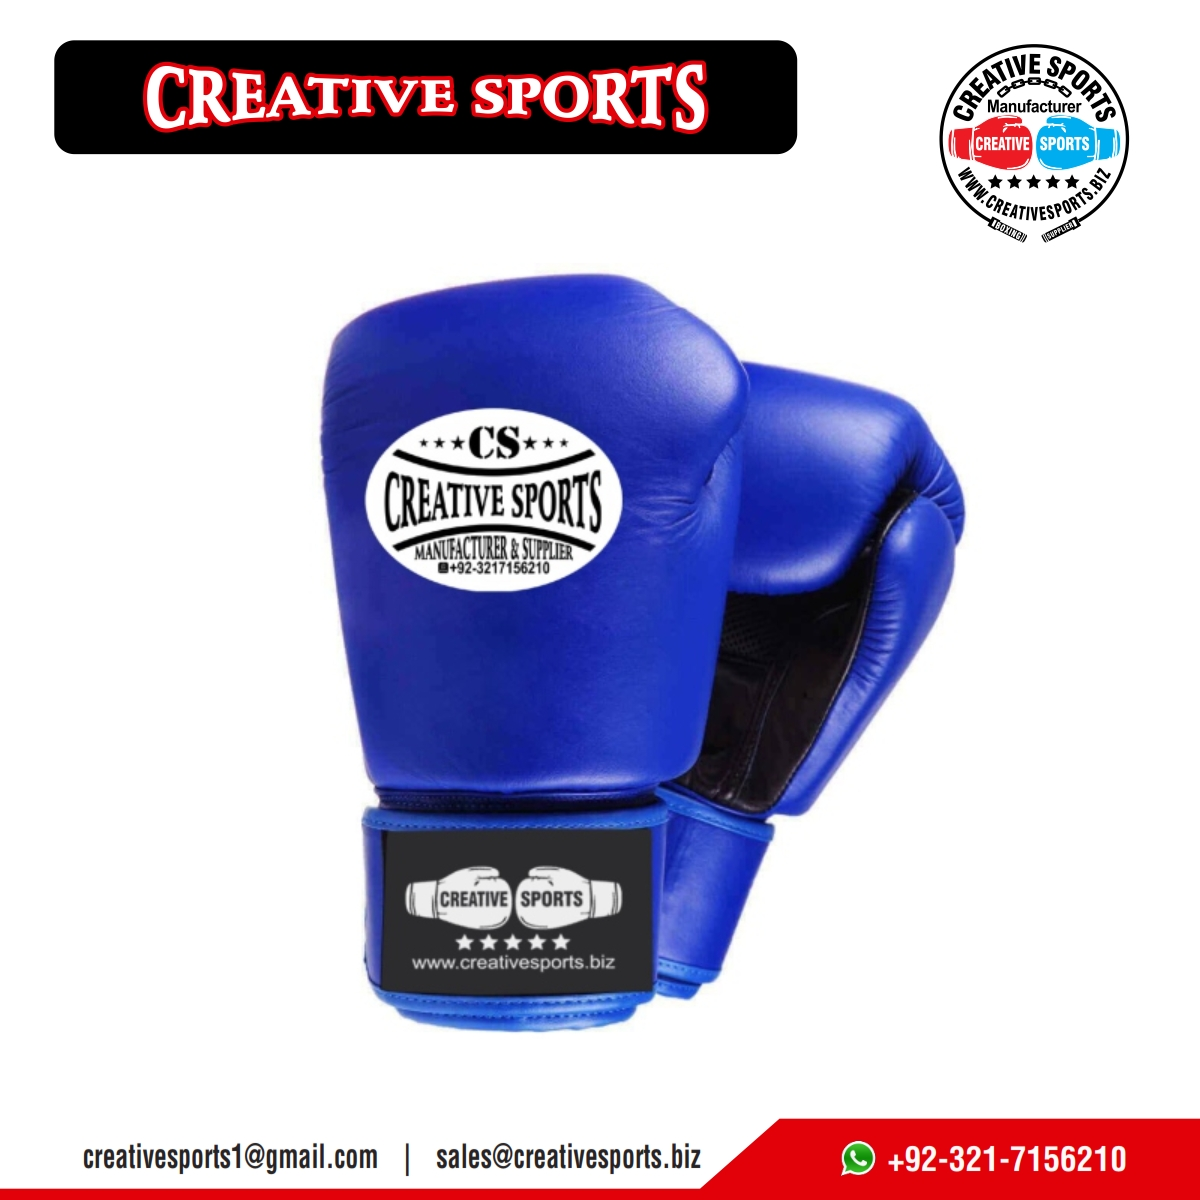 Creative Sports || Manufacturer & Exporter of all kind of